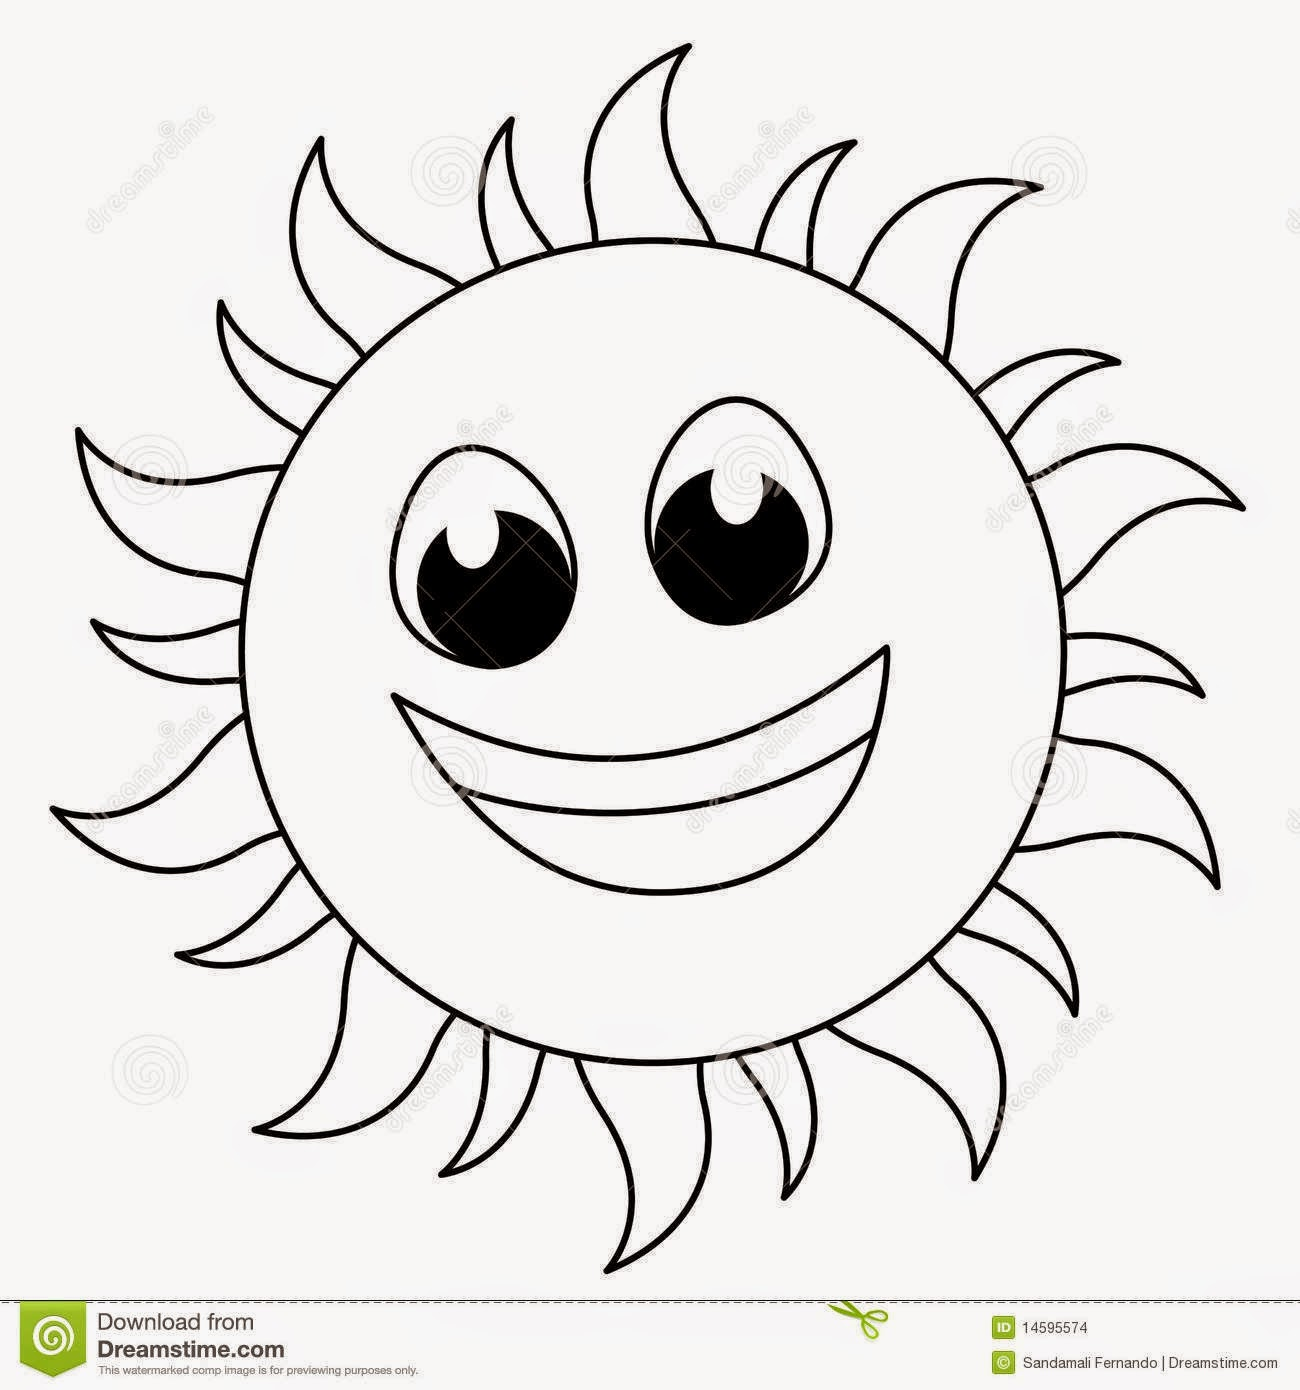 sun with sunglasses clipart black and whiteBlack And White Sun Clip Art   Viewing Gallery OmoqDttL